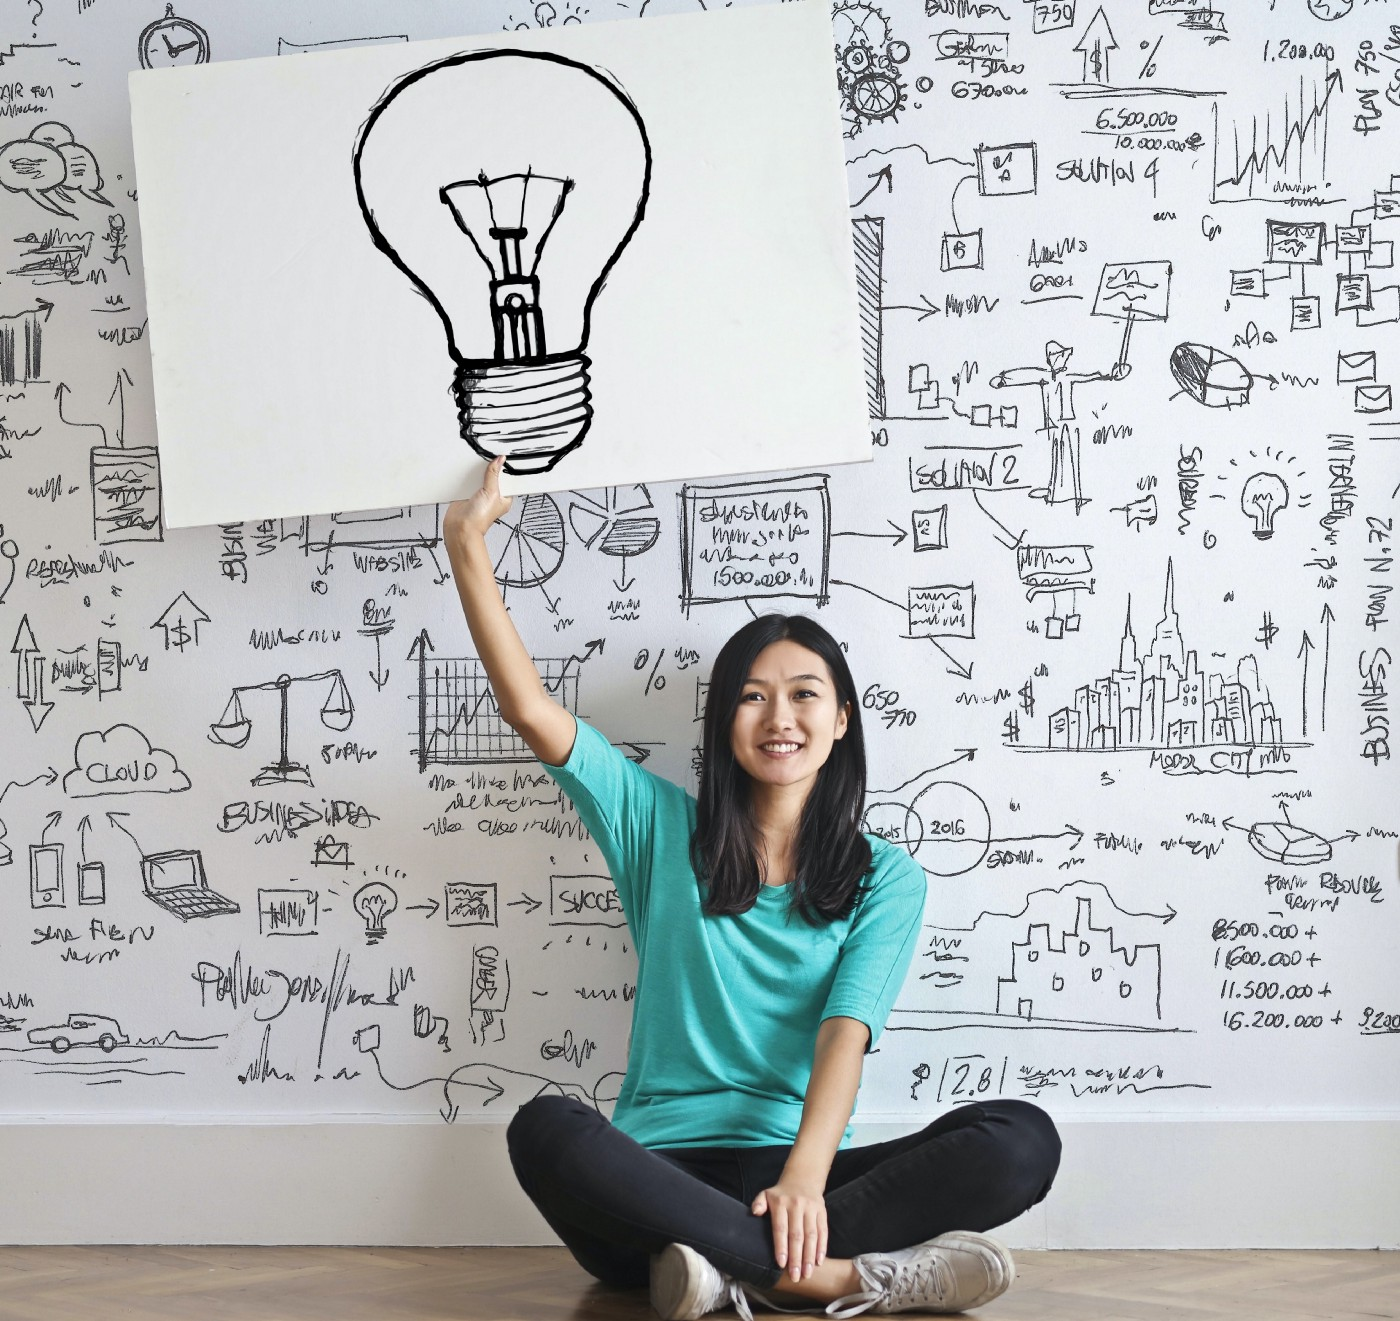 A girl sits on the floor smiling and holding up a sign with a light bulb. Behind her is a wall with numerous sketches, diagrams, and ideas.